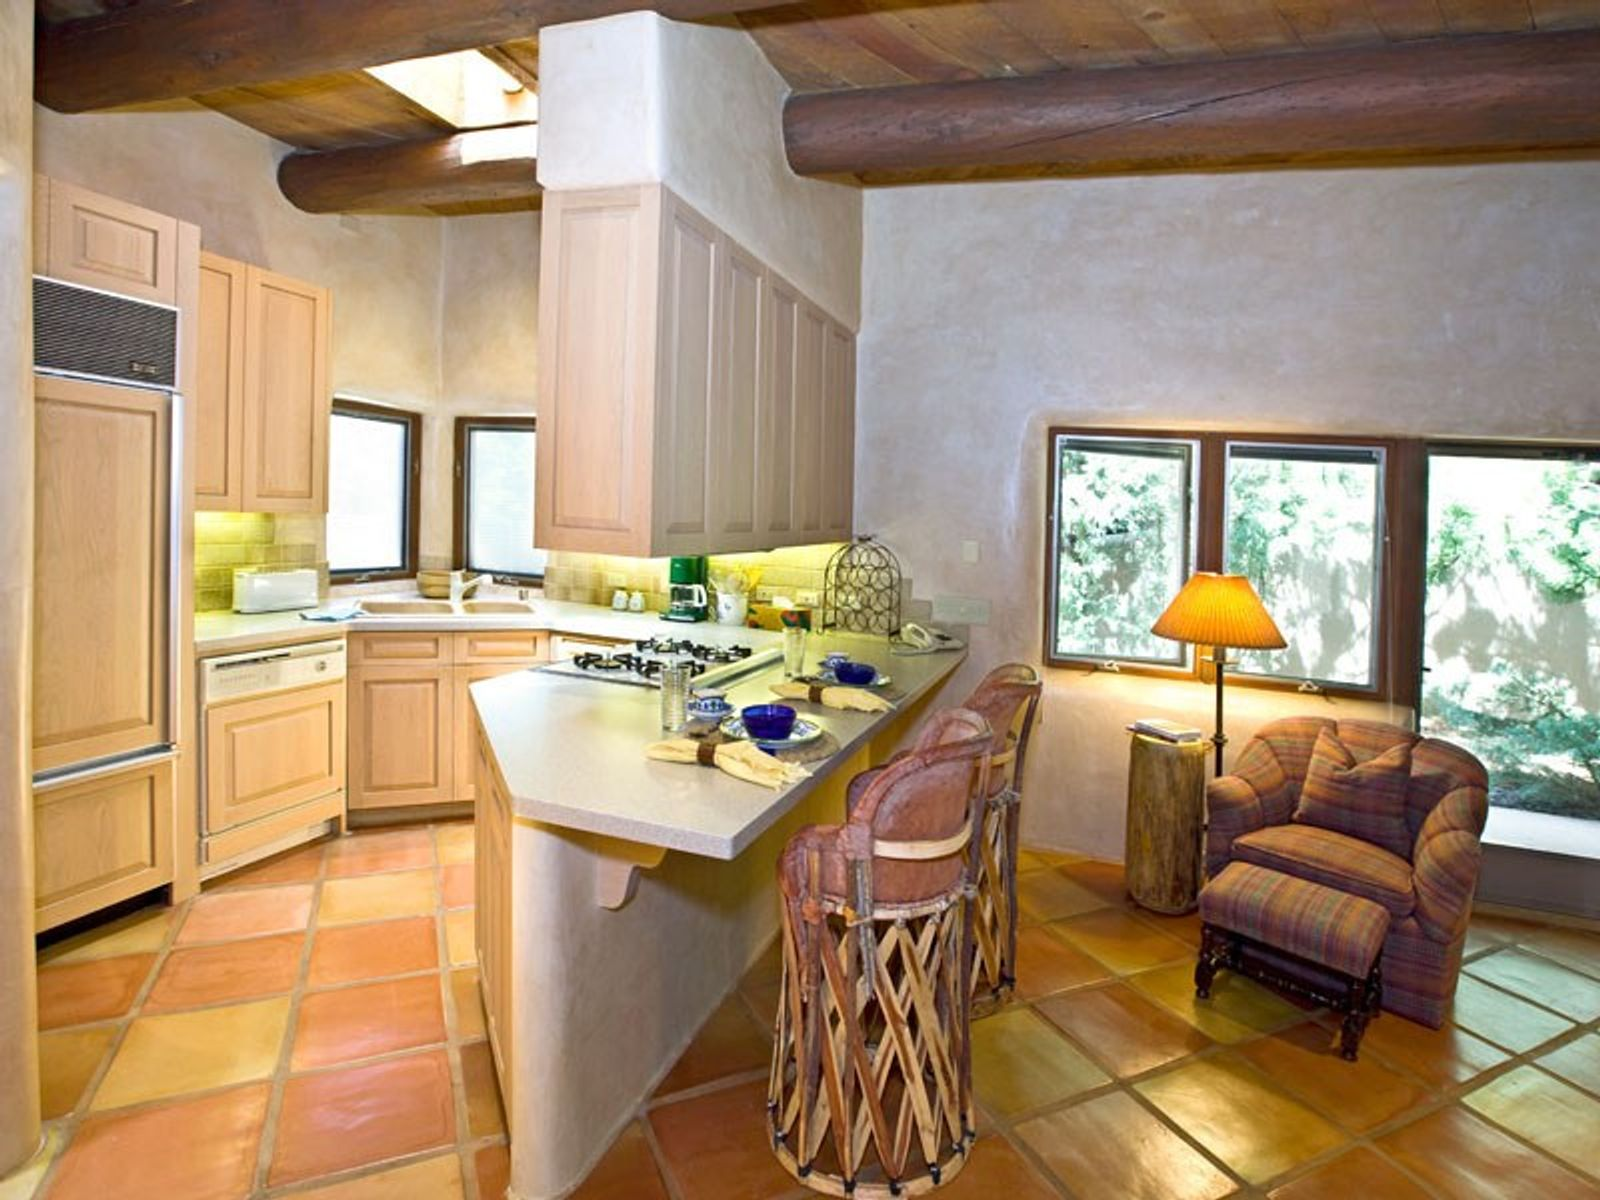 The kitchen includes full-size appliances...